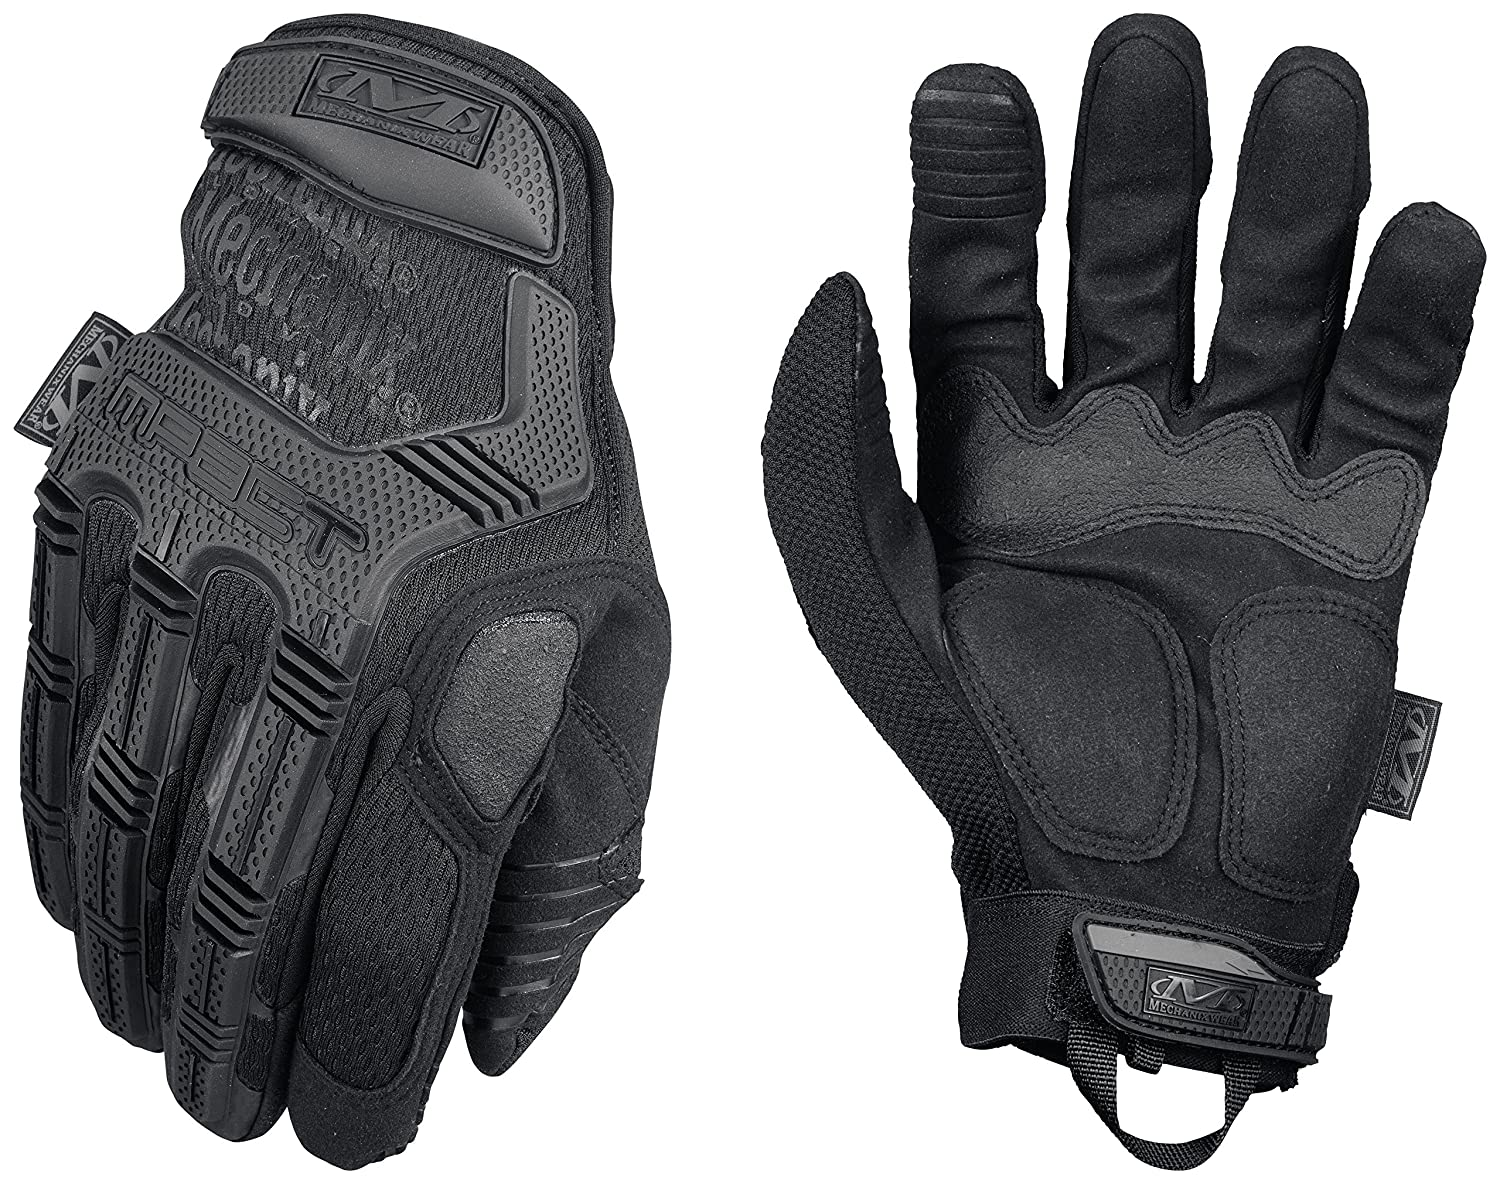 Leather work gloves m pact 2 - Amazon Com Mechanix Wear M Pact Covert Tactical Gloves Large Black Home Improvement